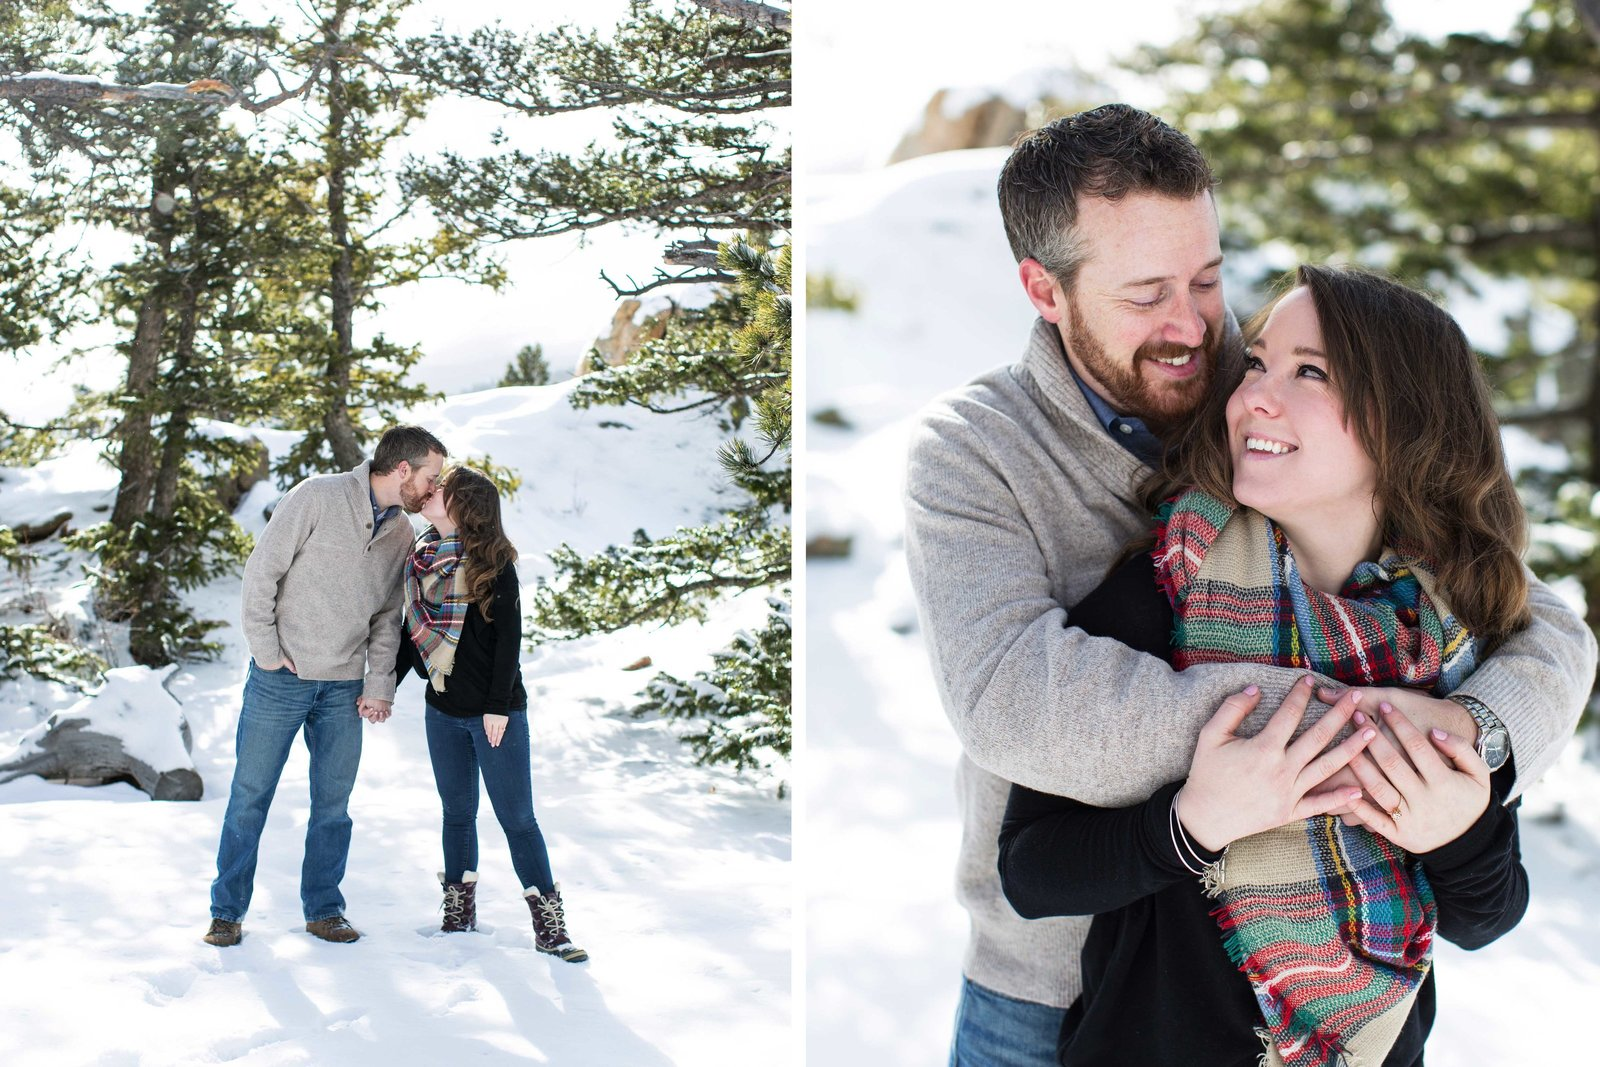 Jessi-And-Zach-Photography-Colorado-Wedding-Photographer-Nevada-Wedding-Photographer-Nevada-Engagement-Photographer_11